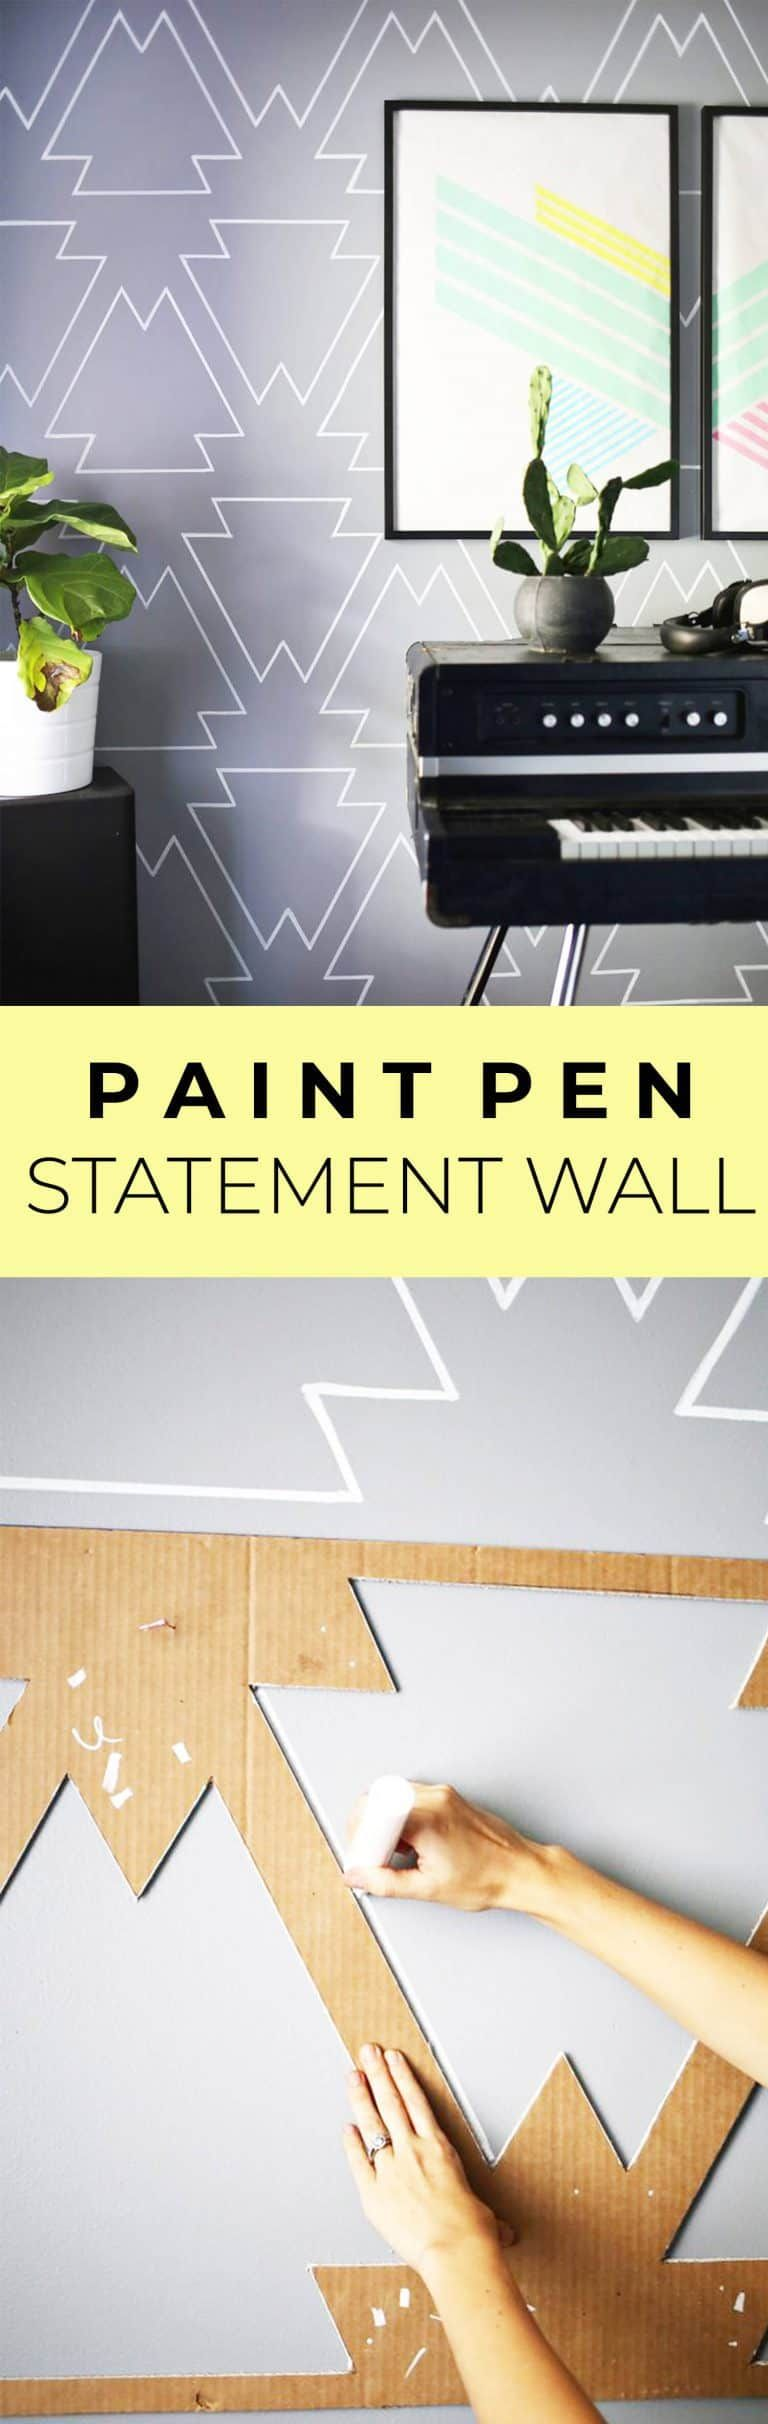 Make a Statement Wall with Paint Pens | Design ideas | Pinterest ...